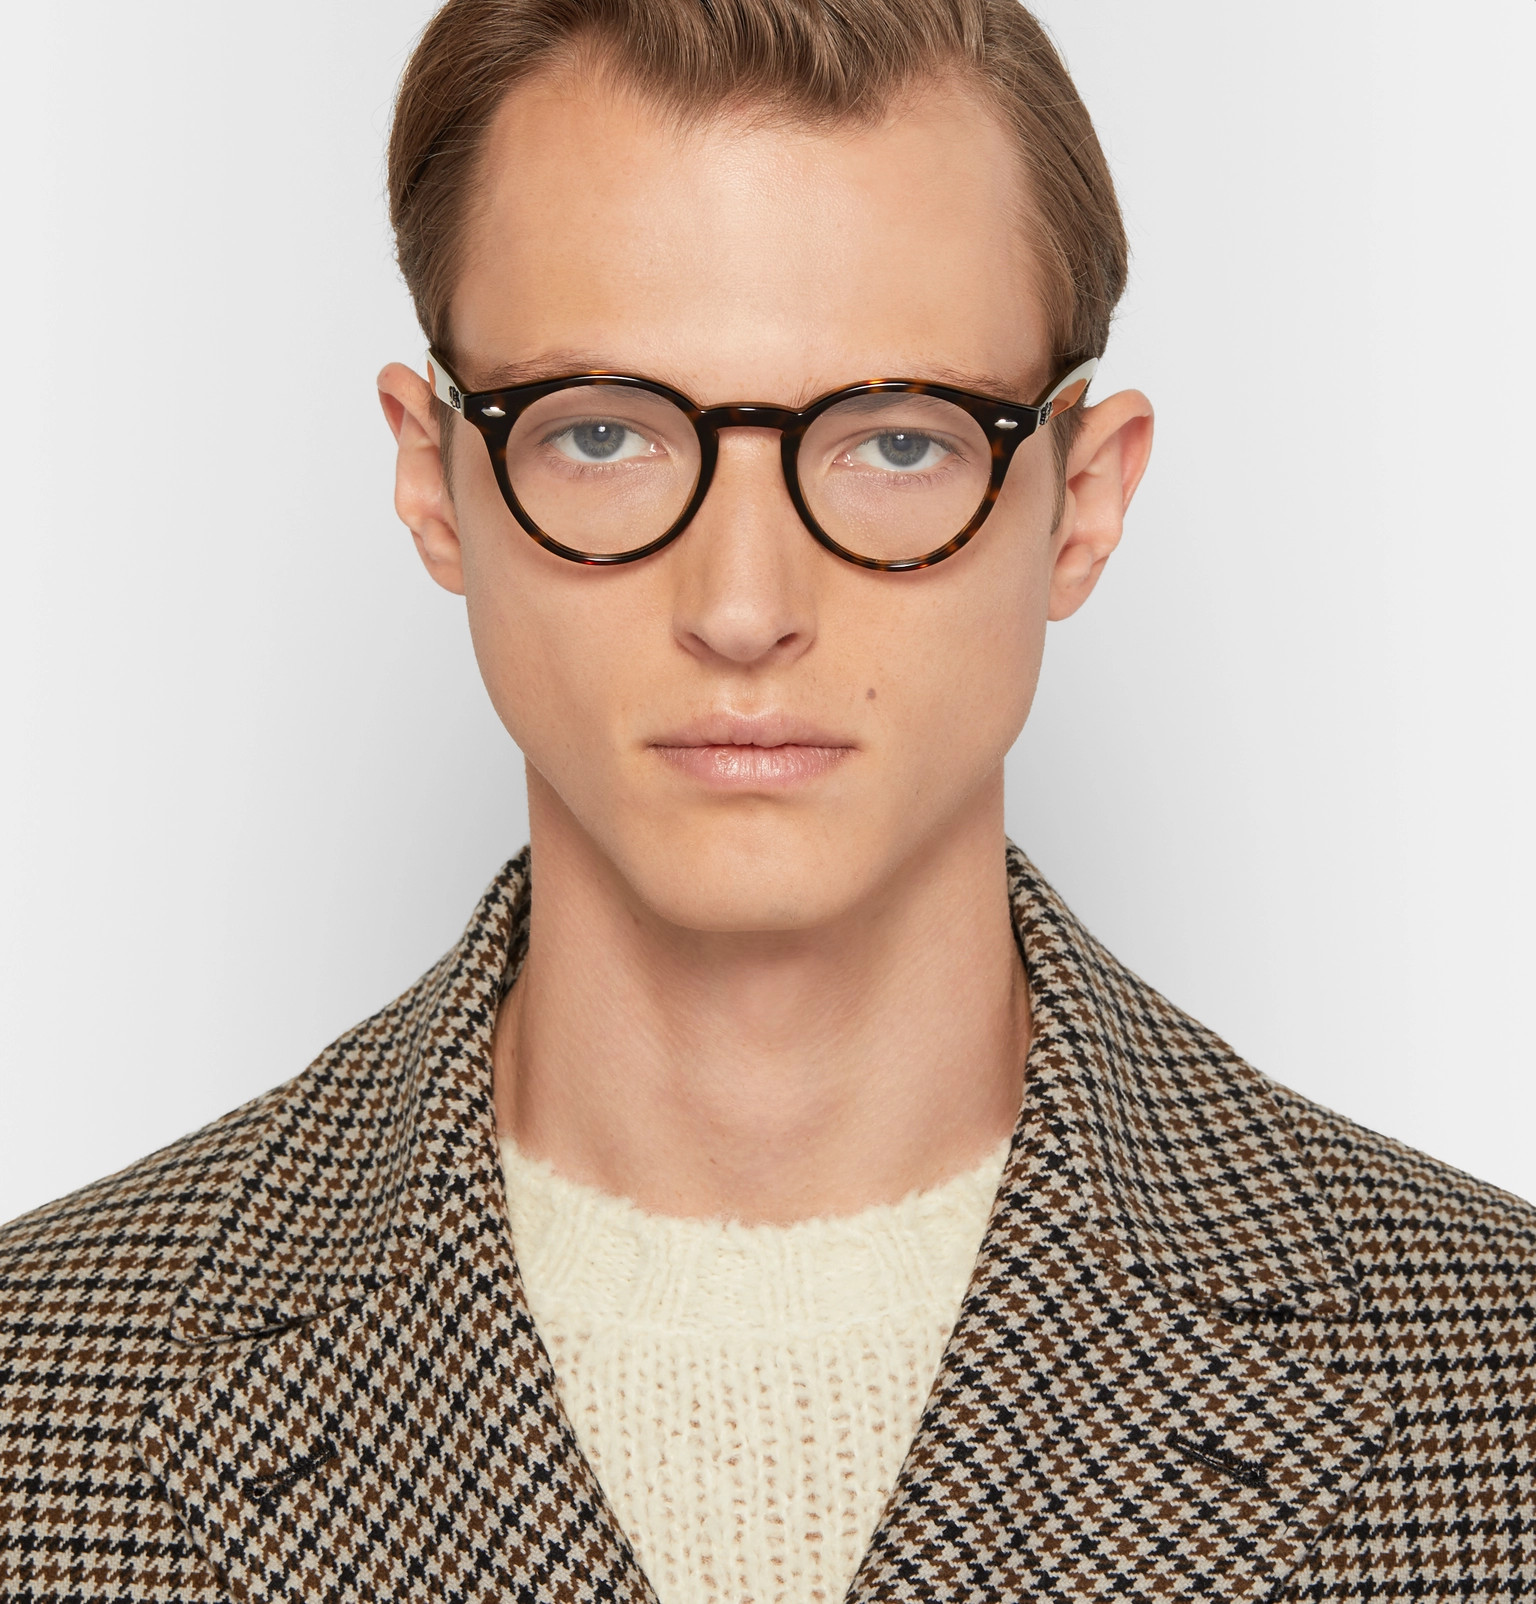 0209a912b0243 Ray-Ban - Round-Frame Tortoiseshell Acetate Optical Glasses